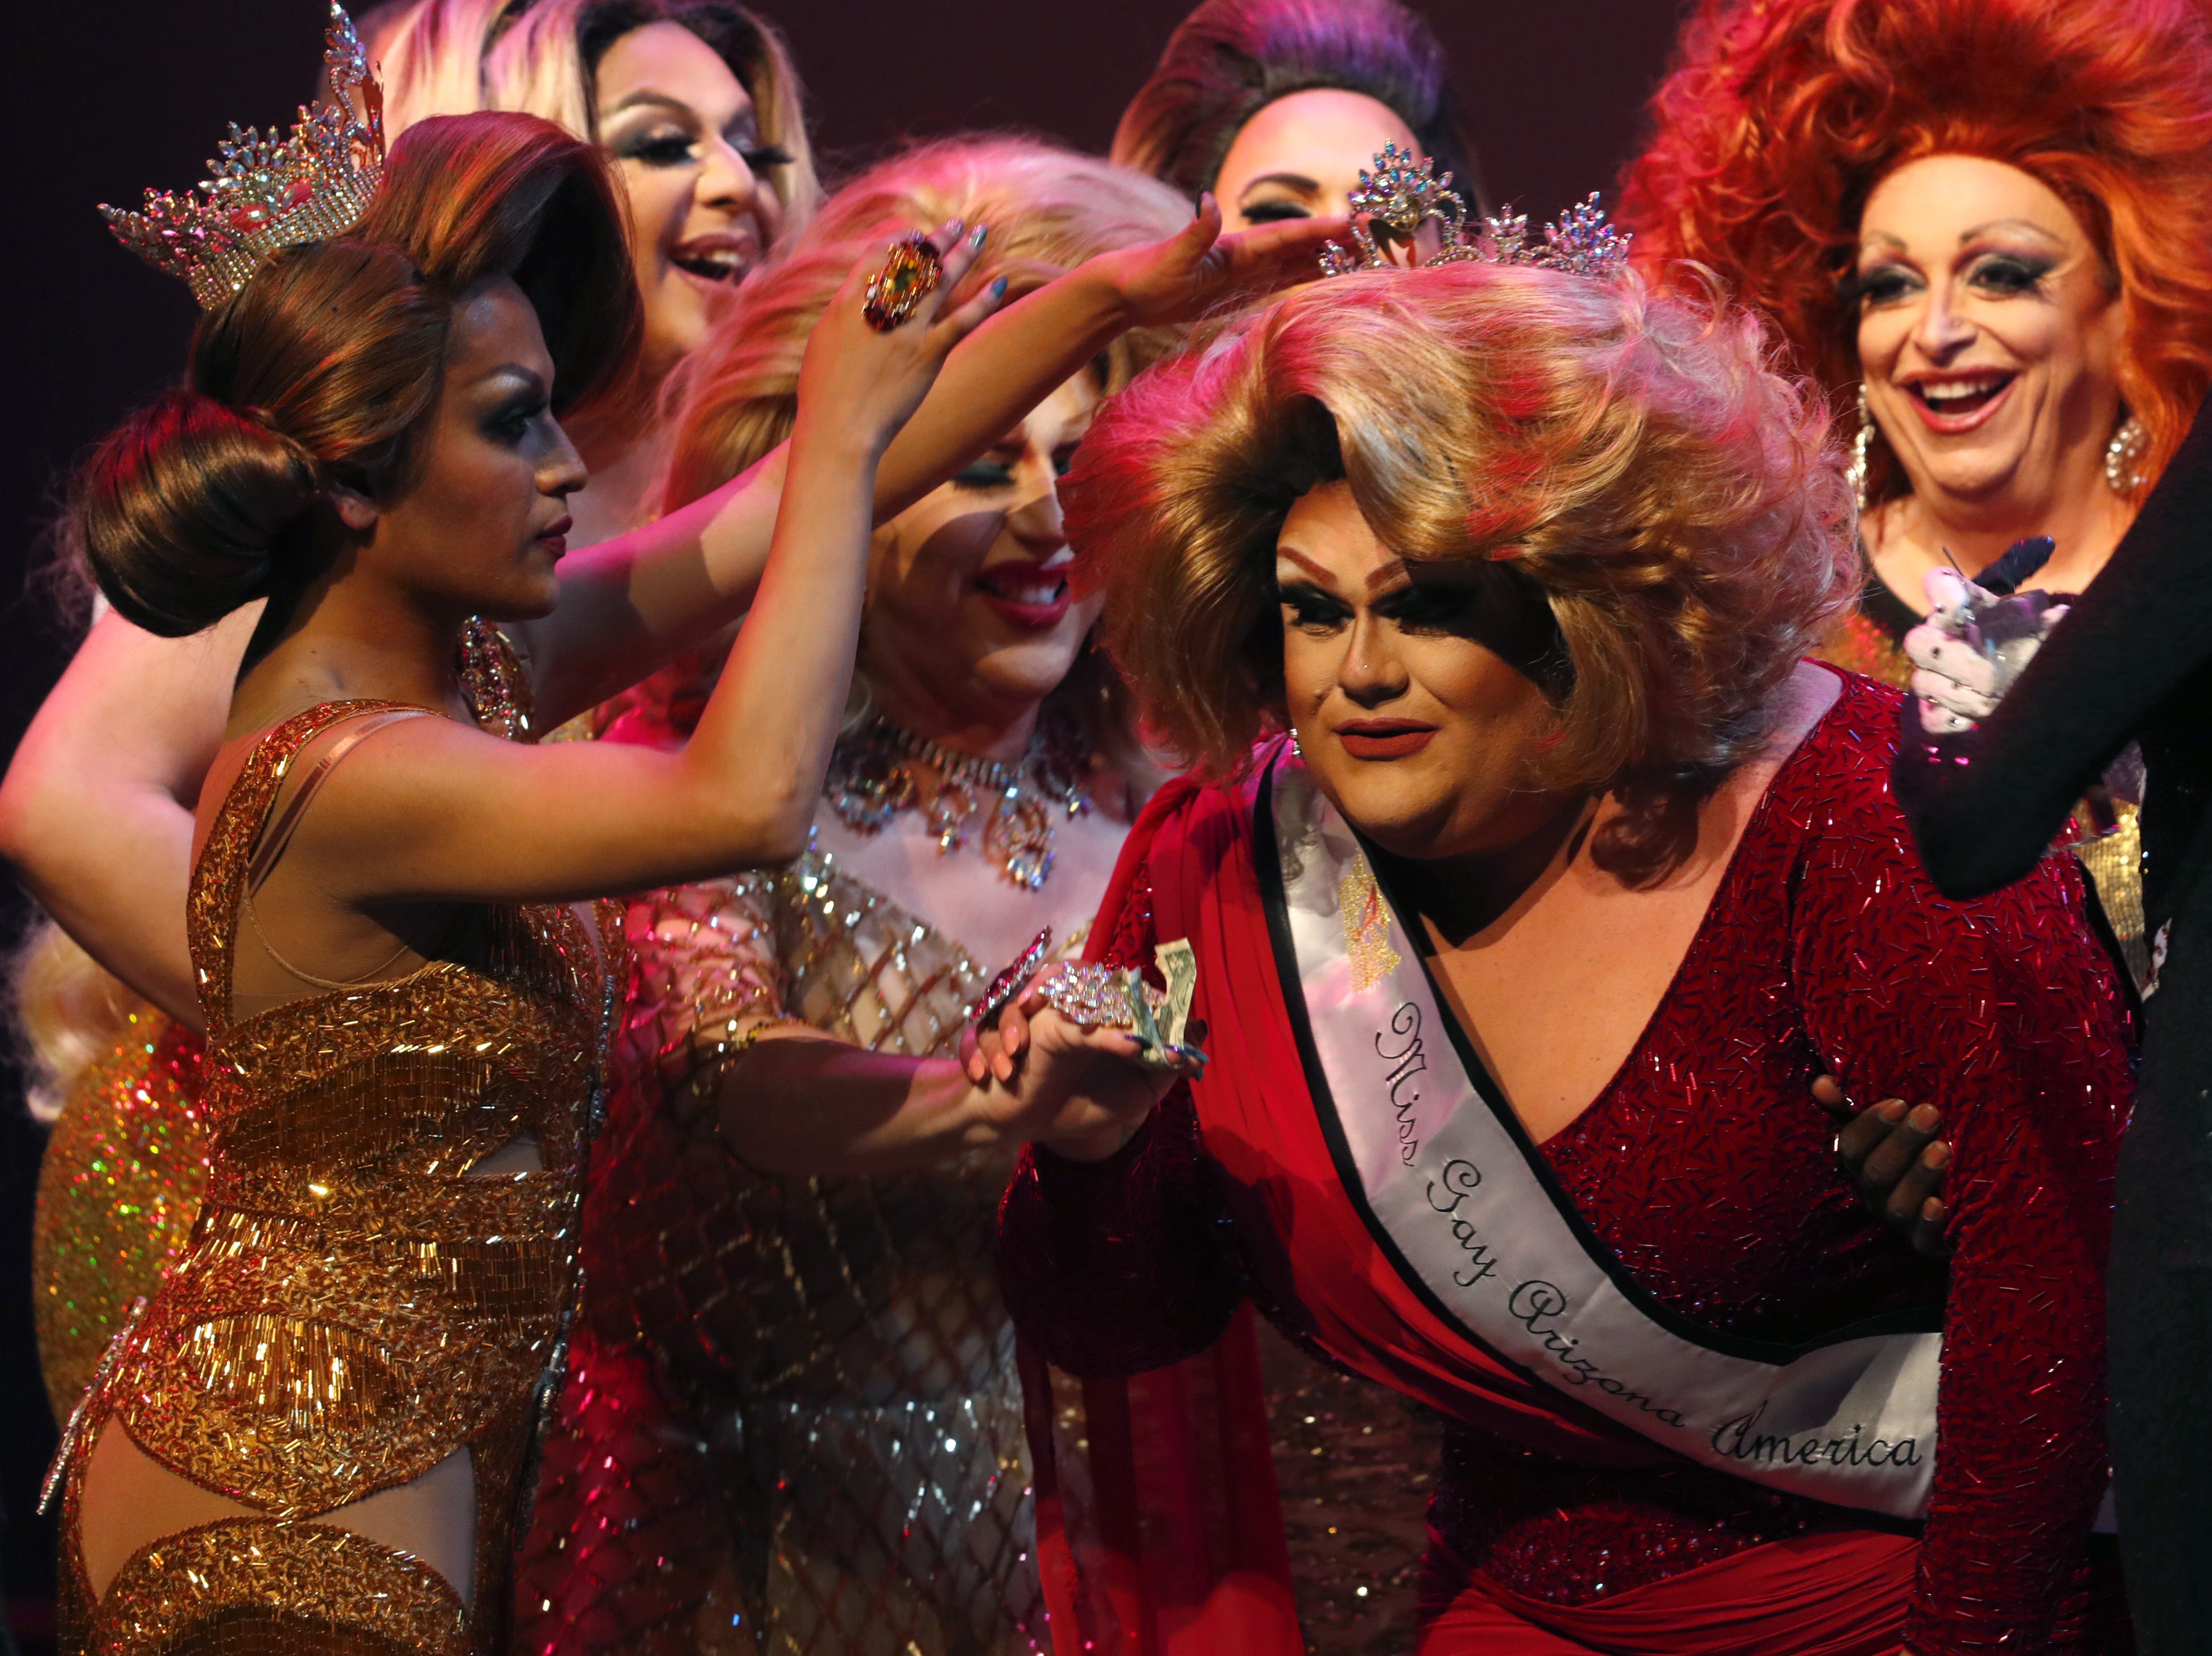 Espressa Grande is crowned by 2018 winner Adriana Galliano after Grande won the Miss Gay Arizona America pageant 2019 at Tempe Center for the Arts on May 11, 2019.